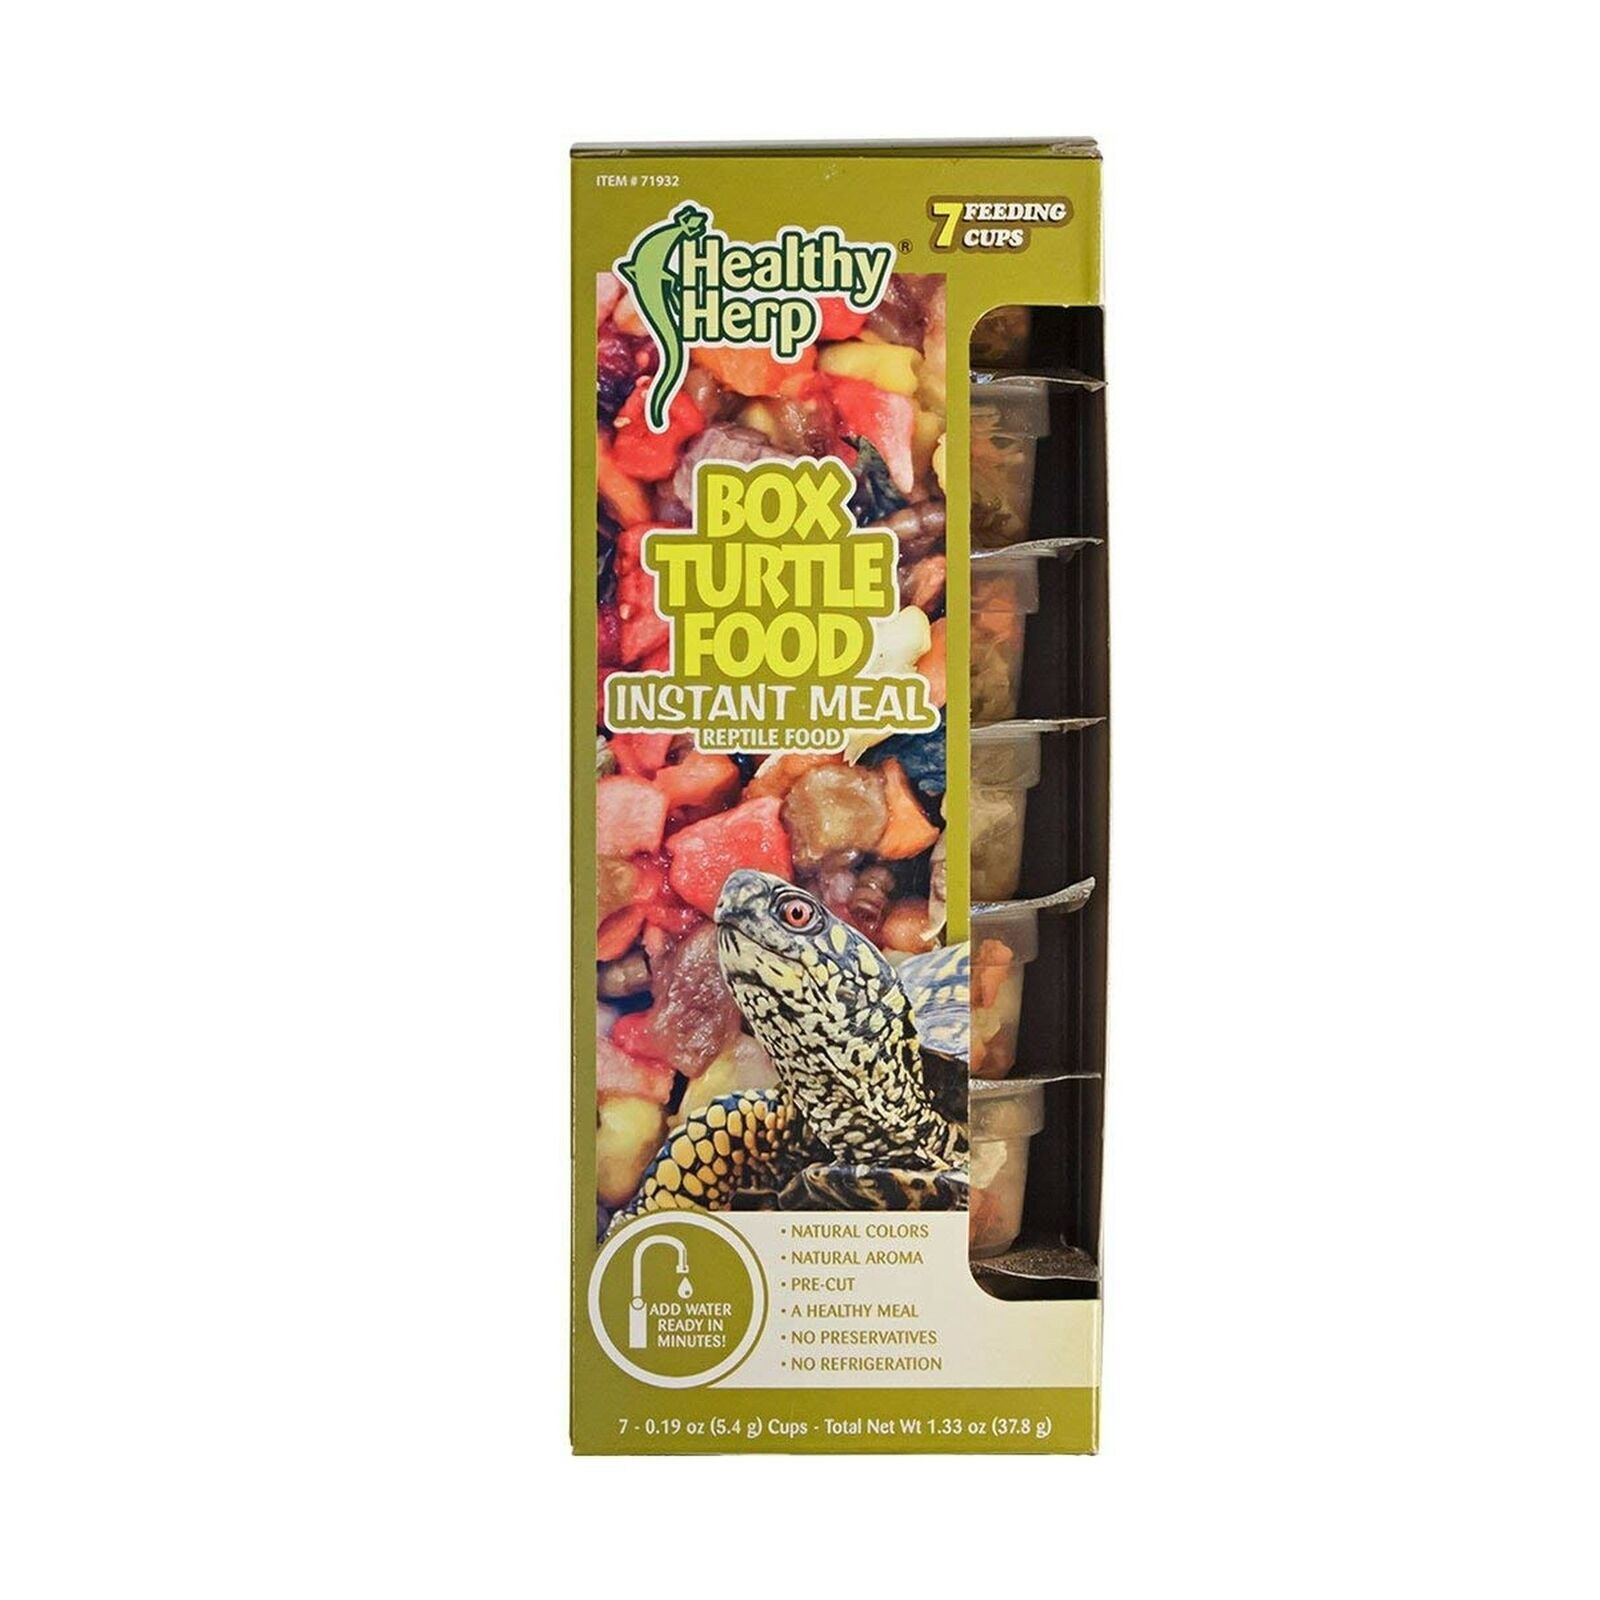 Healthy Herp Box Turtle Food Instant Meal 7 X 0.19-ounce (5.4 Grams) Cups